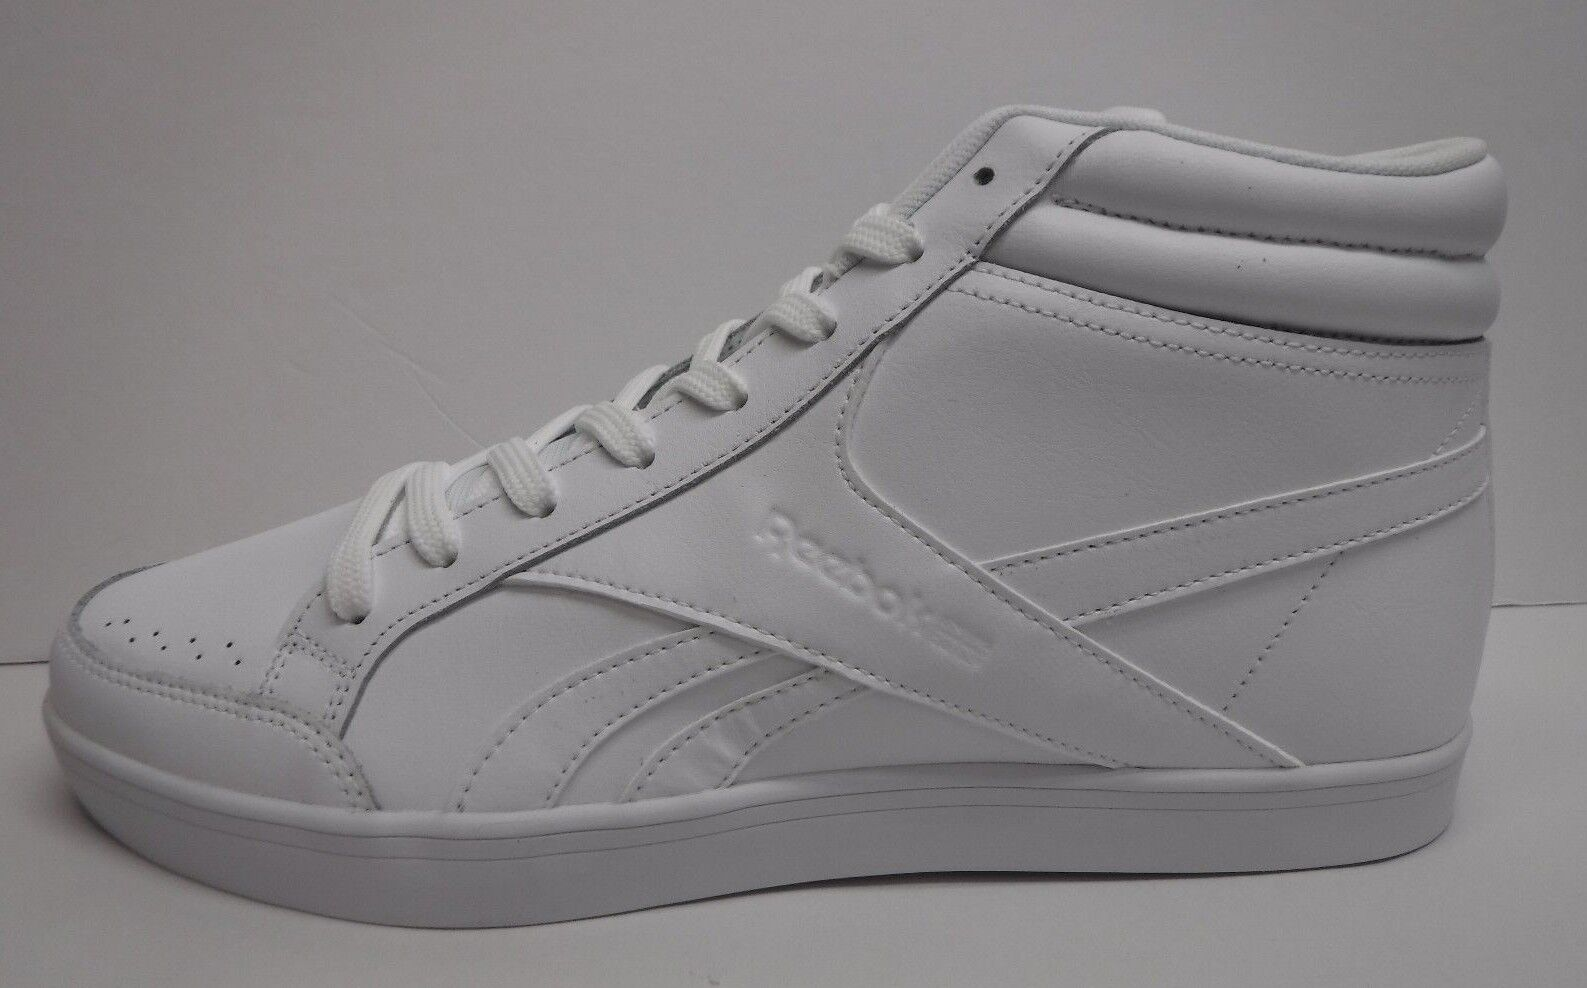 Reebok Taille 11 blanc High Top baskets New femmes chaussures